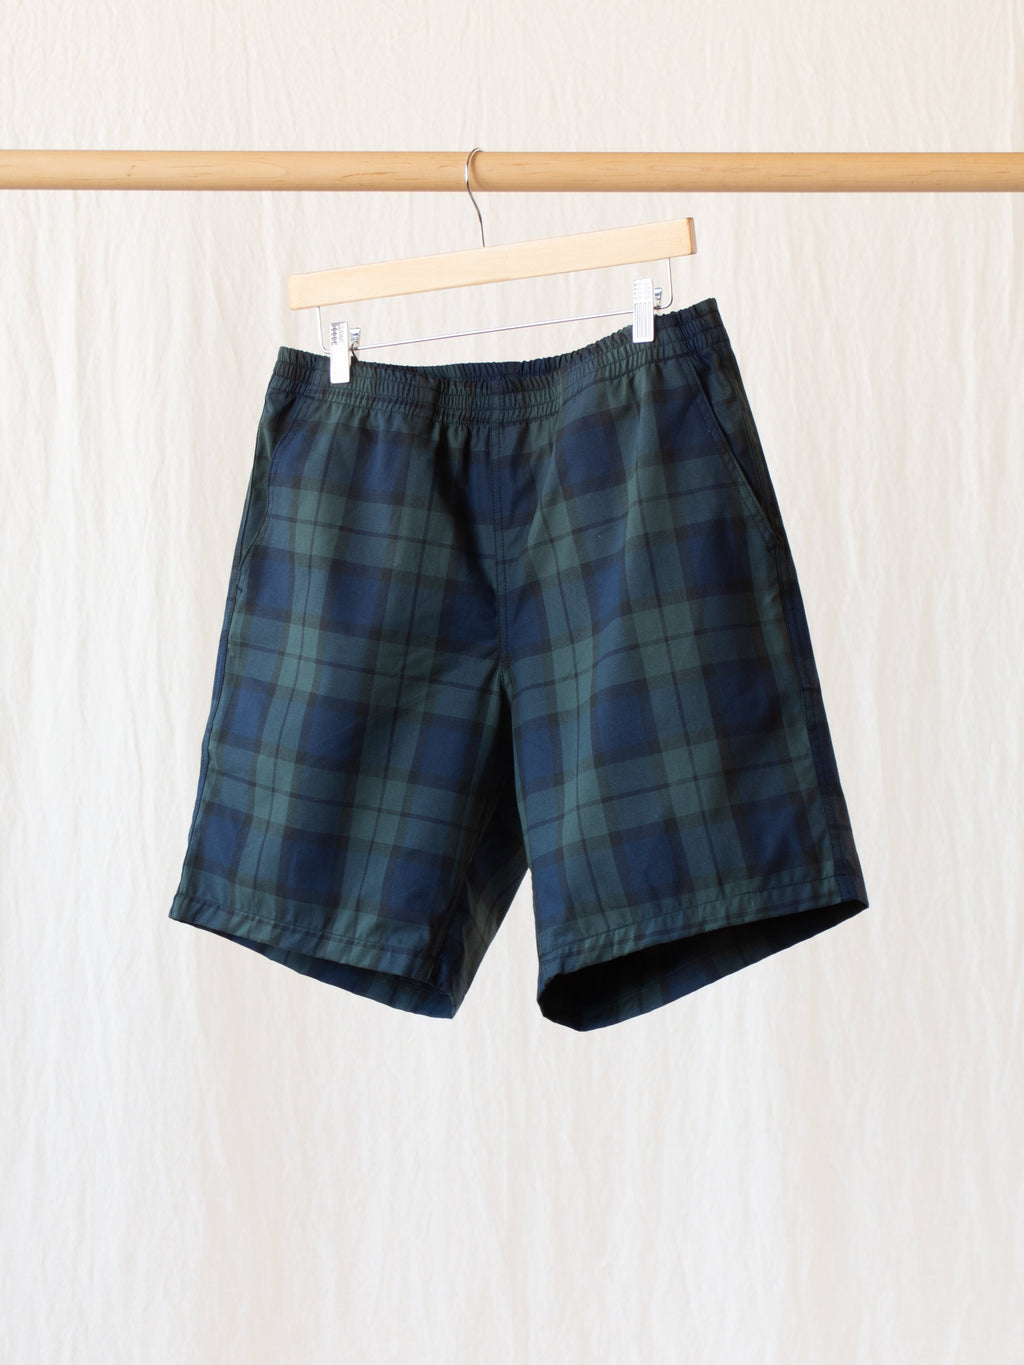 Namu Shop - paa Shorts - Black Watch